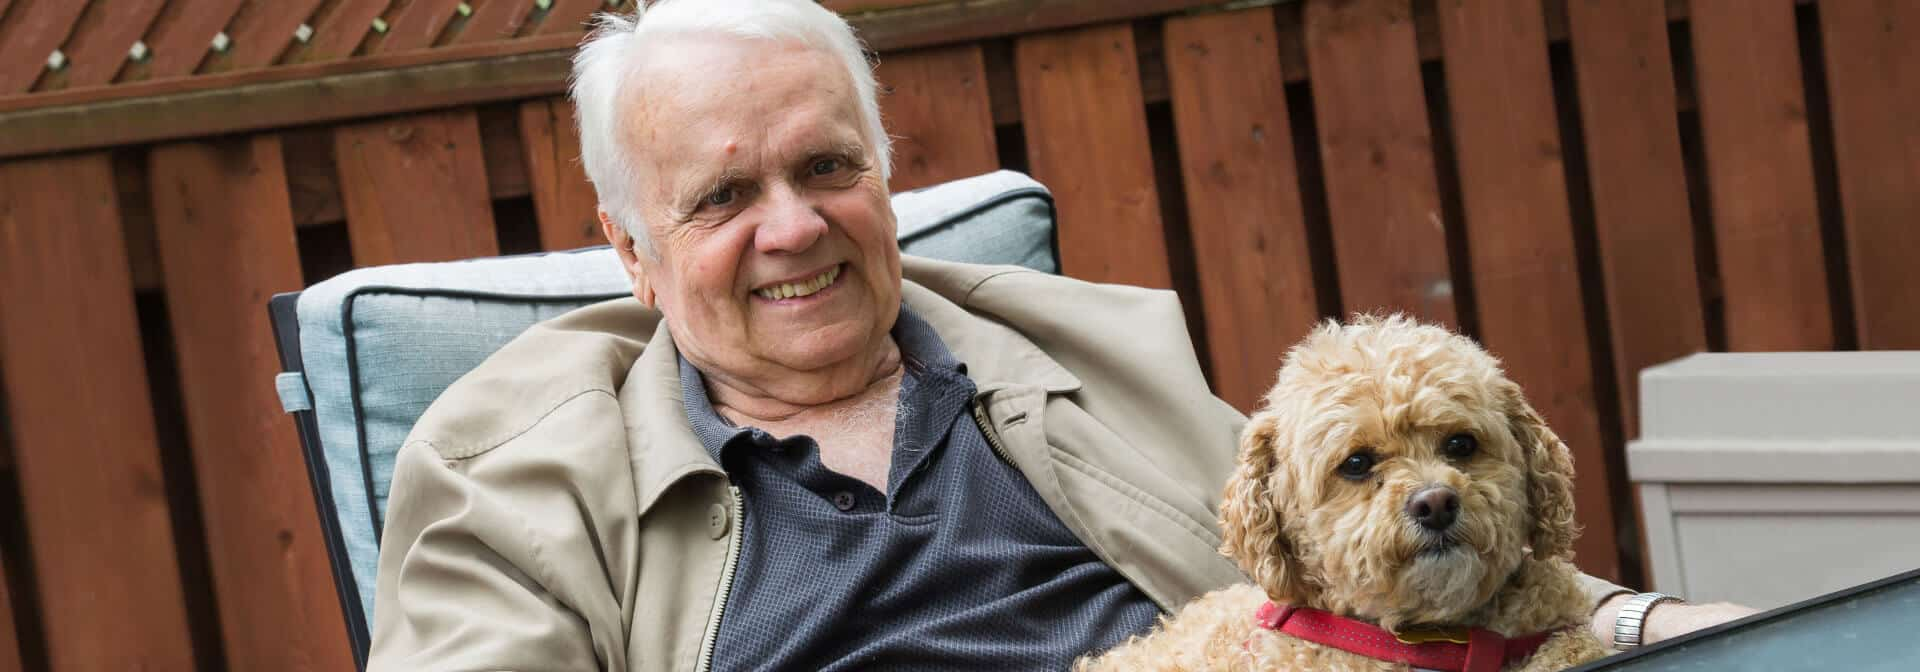 Senior man relaxing on porch with dog